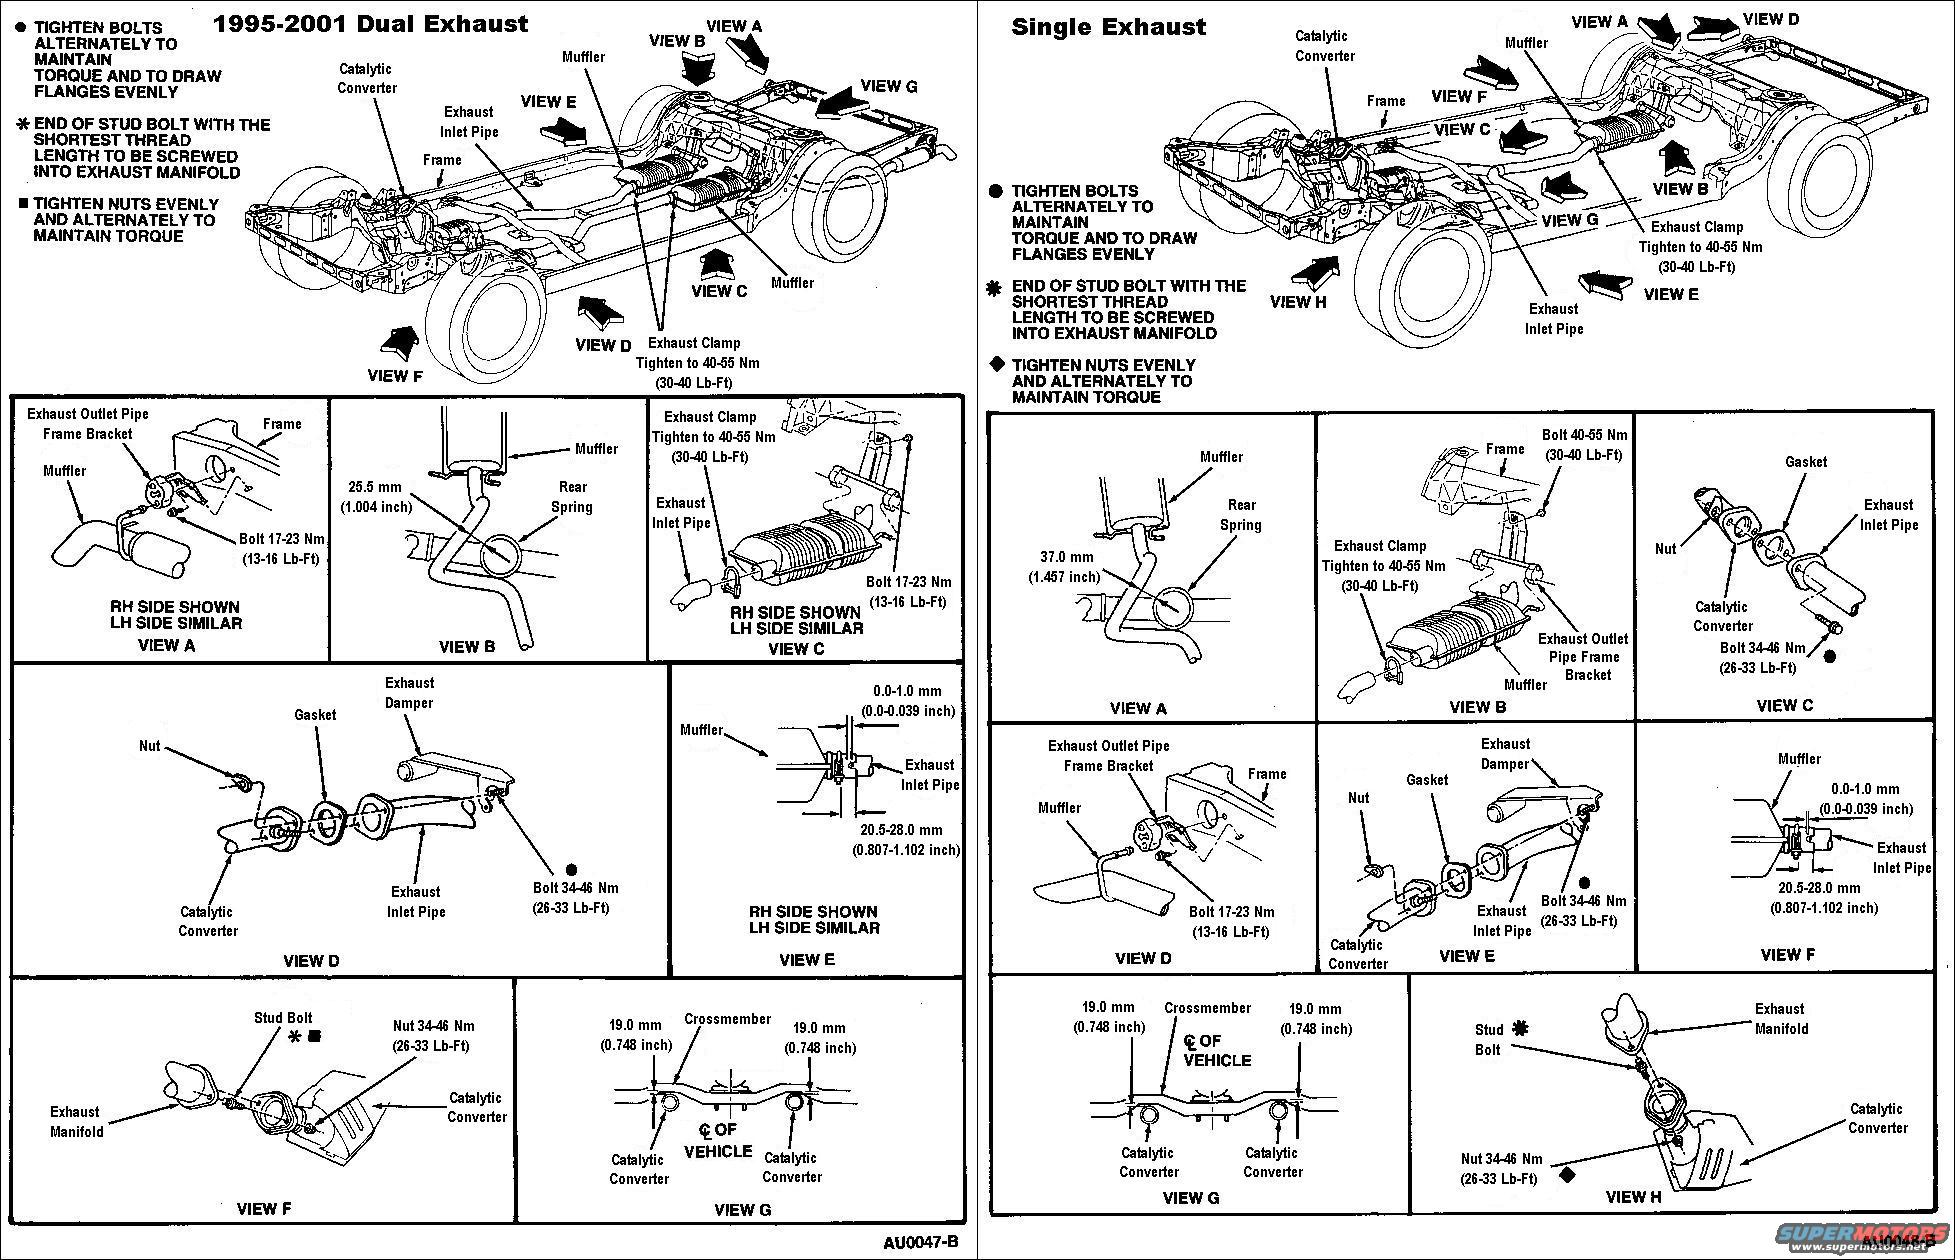 1994 ford crown victoria diagrams picture supermotorsnet wiring 2003 Crown Victoria Wiring Diagram